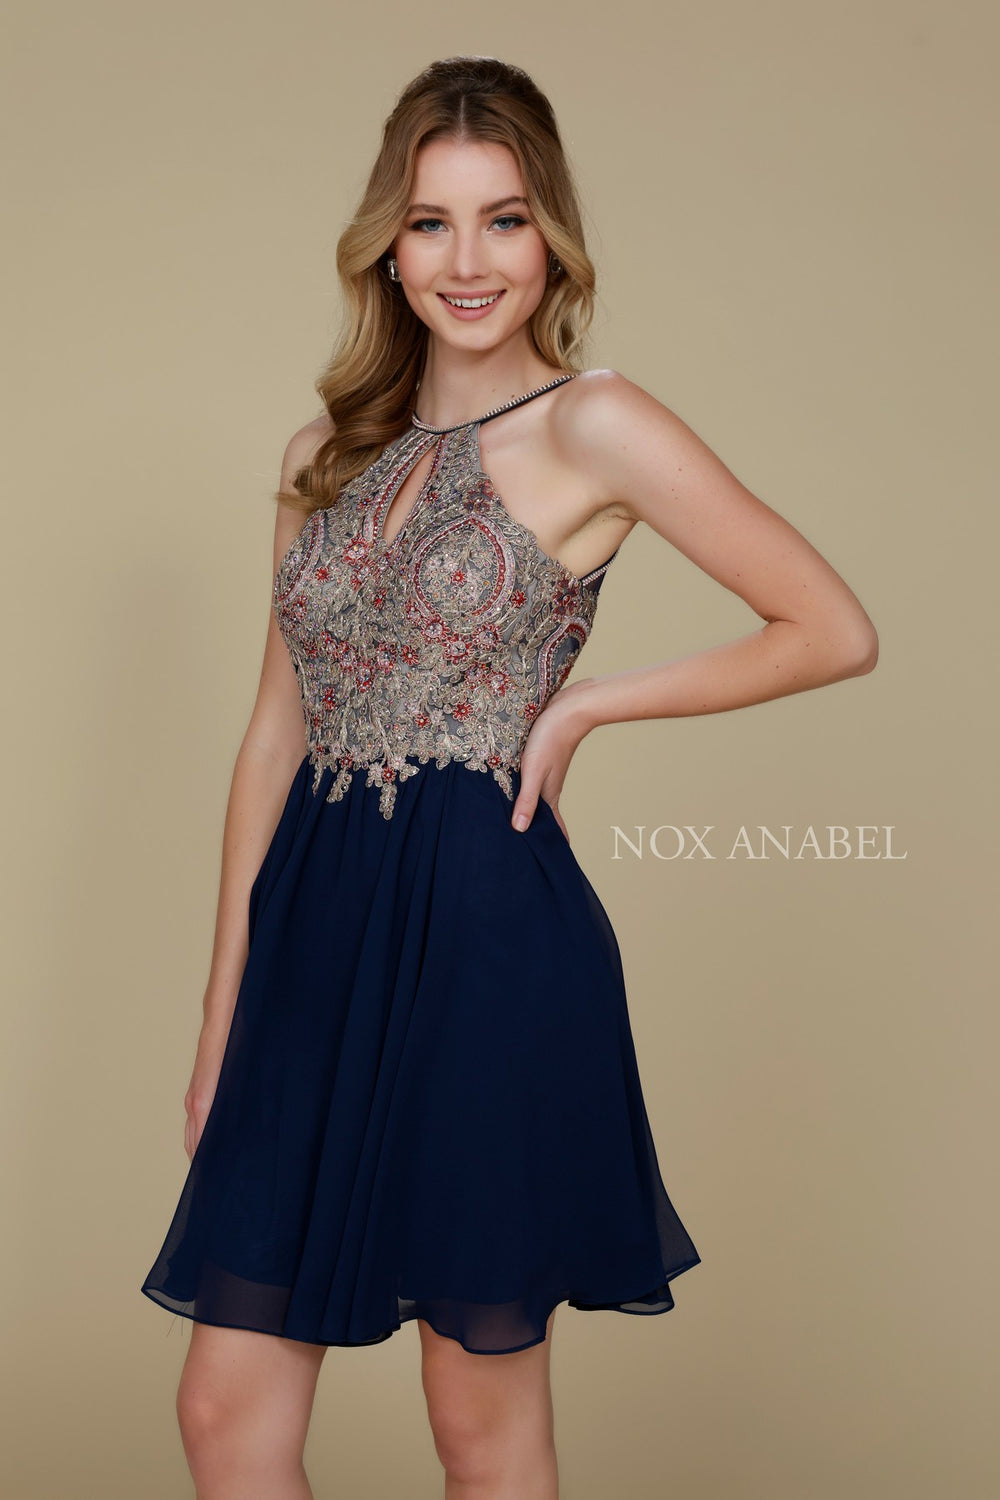 HOMECOMING LACE HALTERNECK DRESS 6324 BY NARIANNA